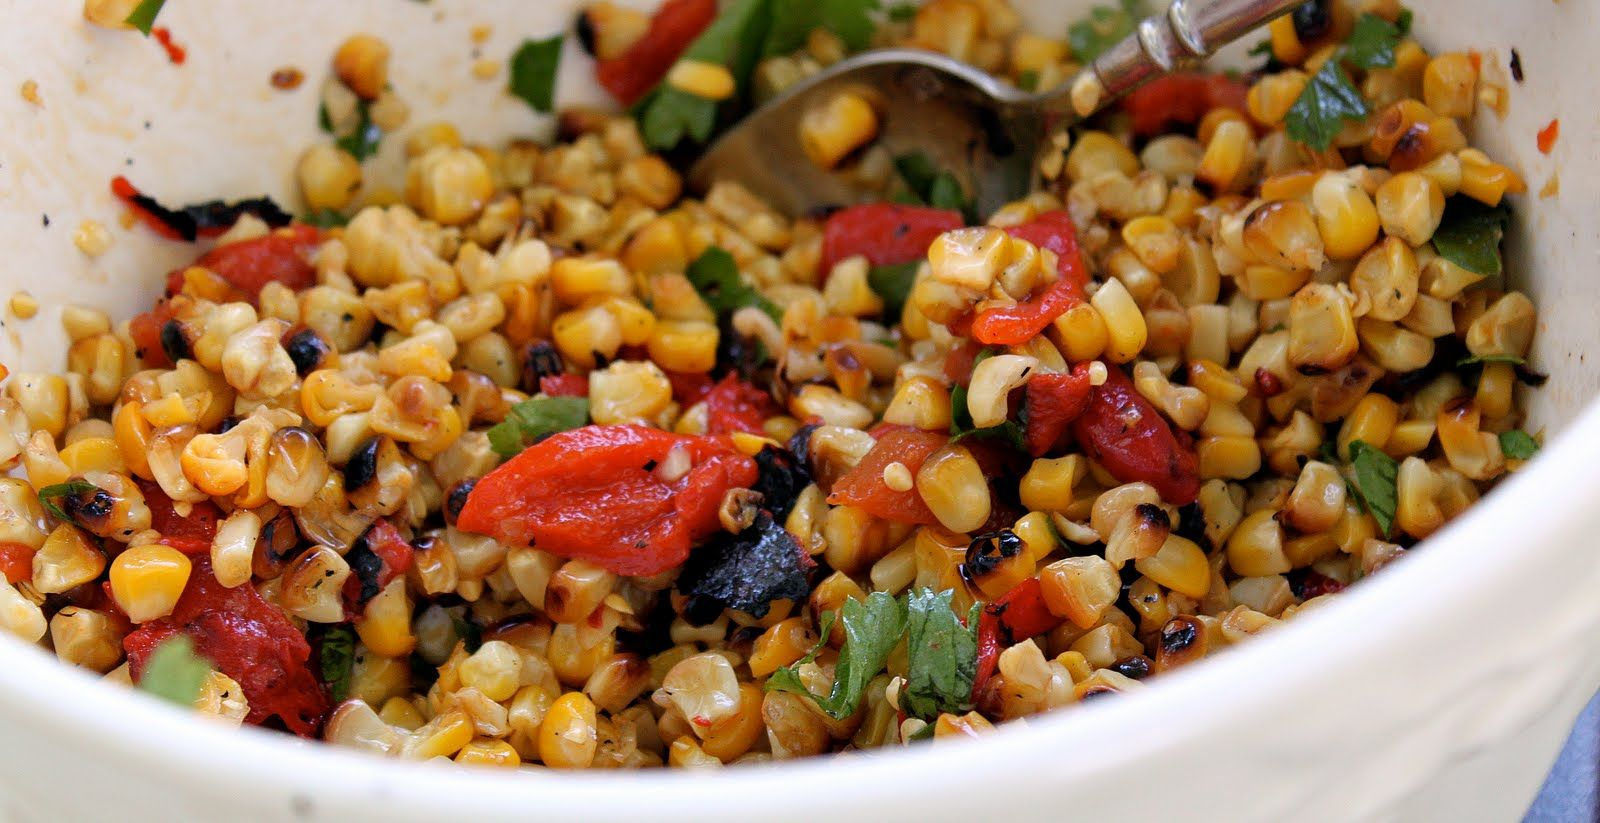 It's corn season – yipppee!! I love a fresh, sweet ear of corn on the cob in the summer. Here's another recipe from Matilda's Summer Garden Party. This grilled corn salad can be changed up with the addition of different herbs and vegetables, but the base always stays the same – amazingly delicious grilled corn! …